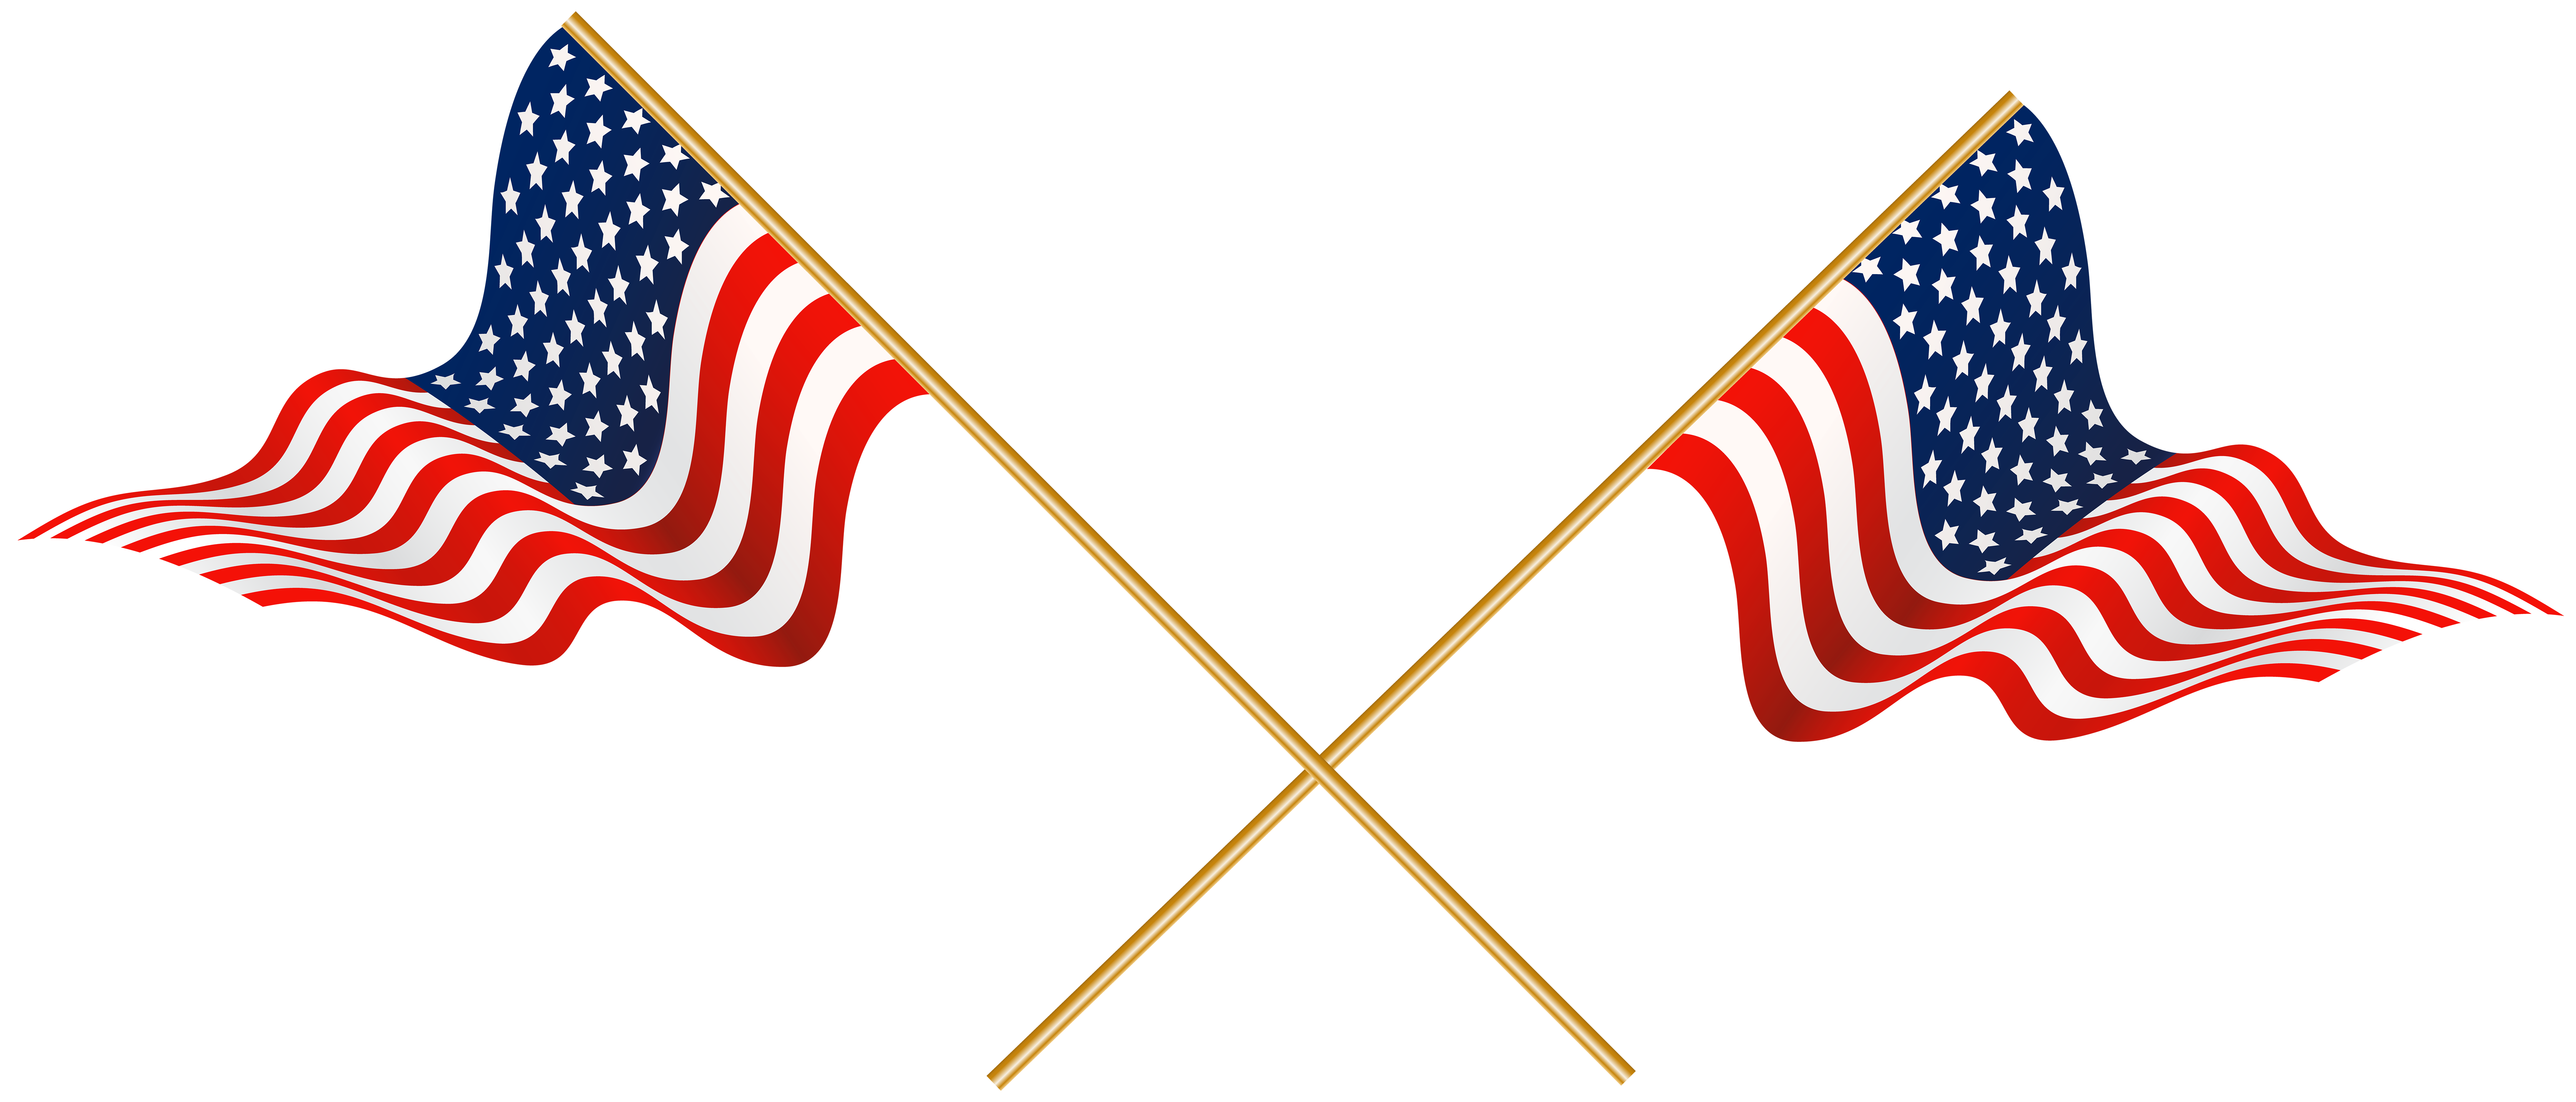 Clipart bow flag american. Usa crossed flags transparent